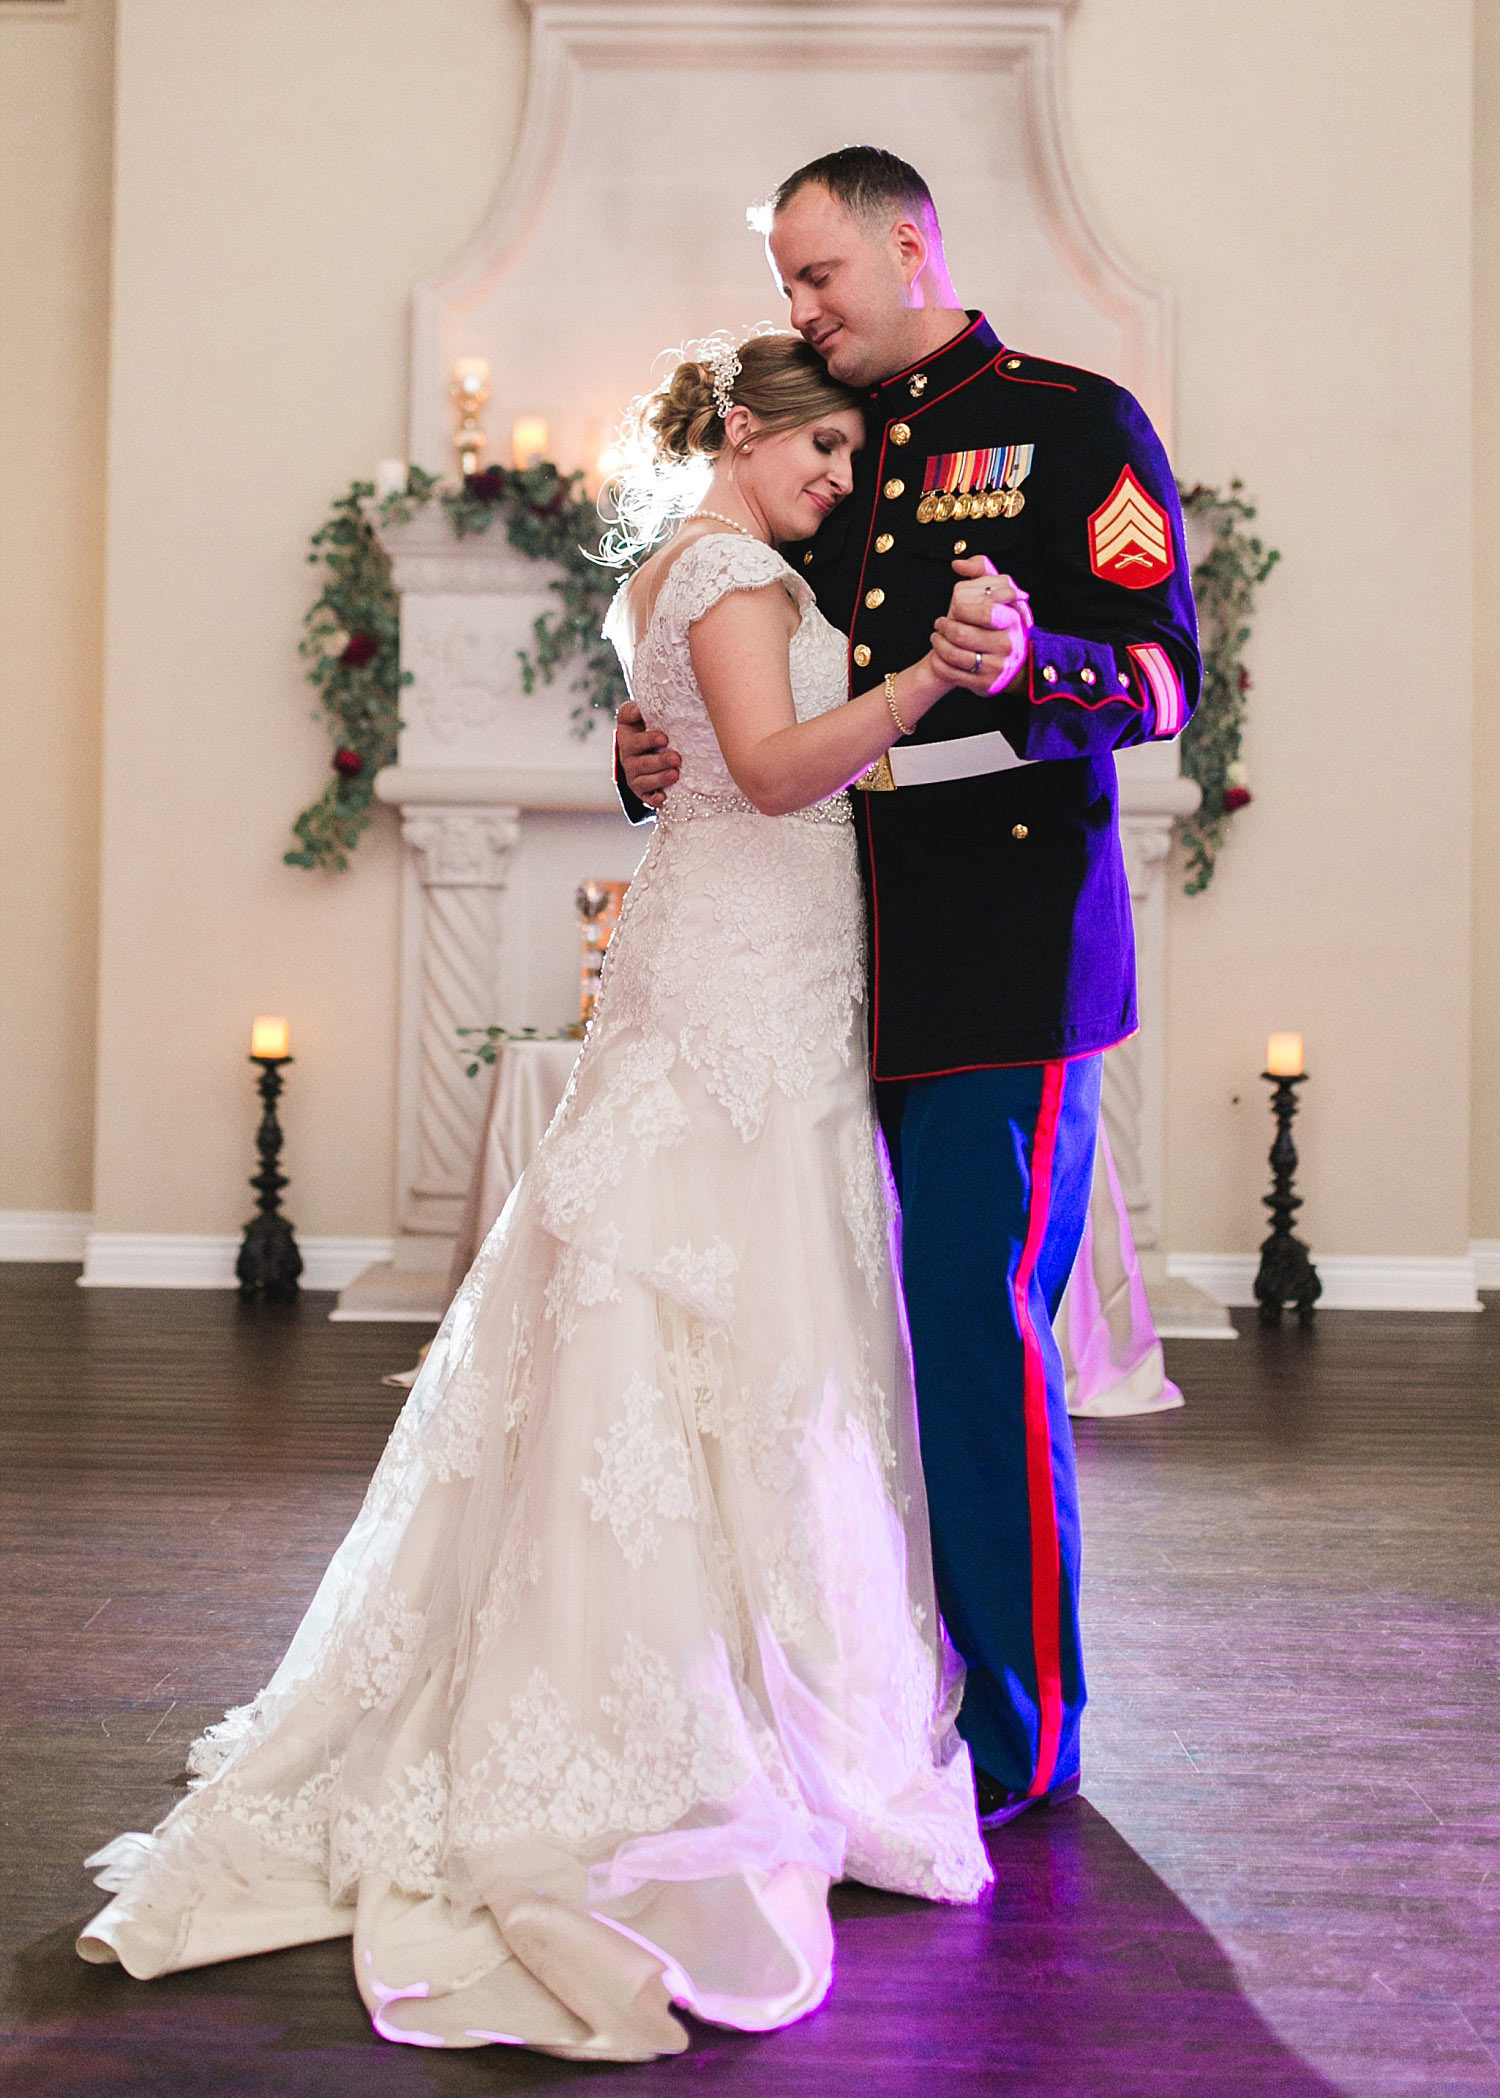 Castle at Rockwall wedding bride and marine groom dancing in front of fireplace